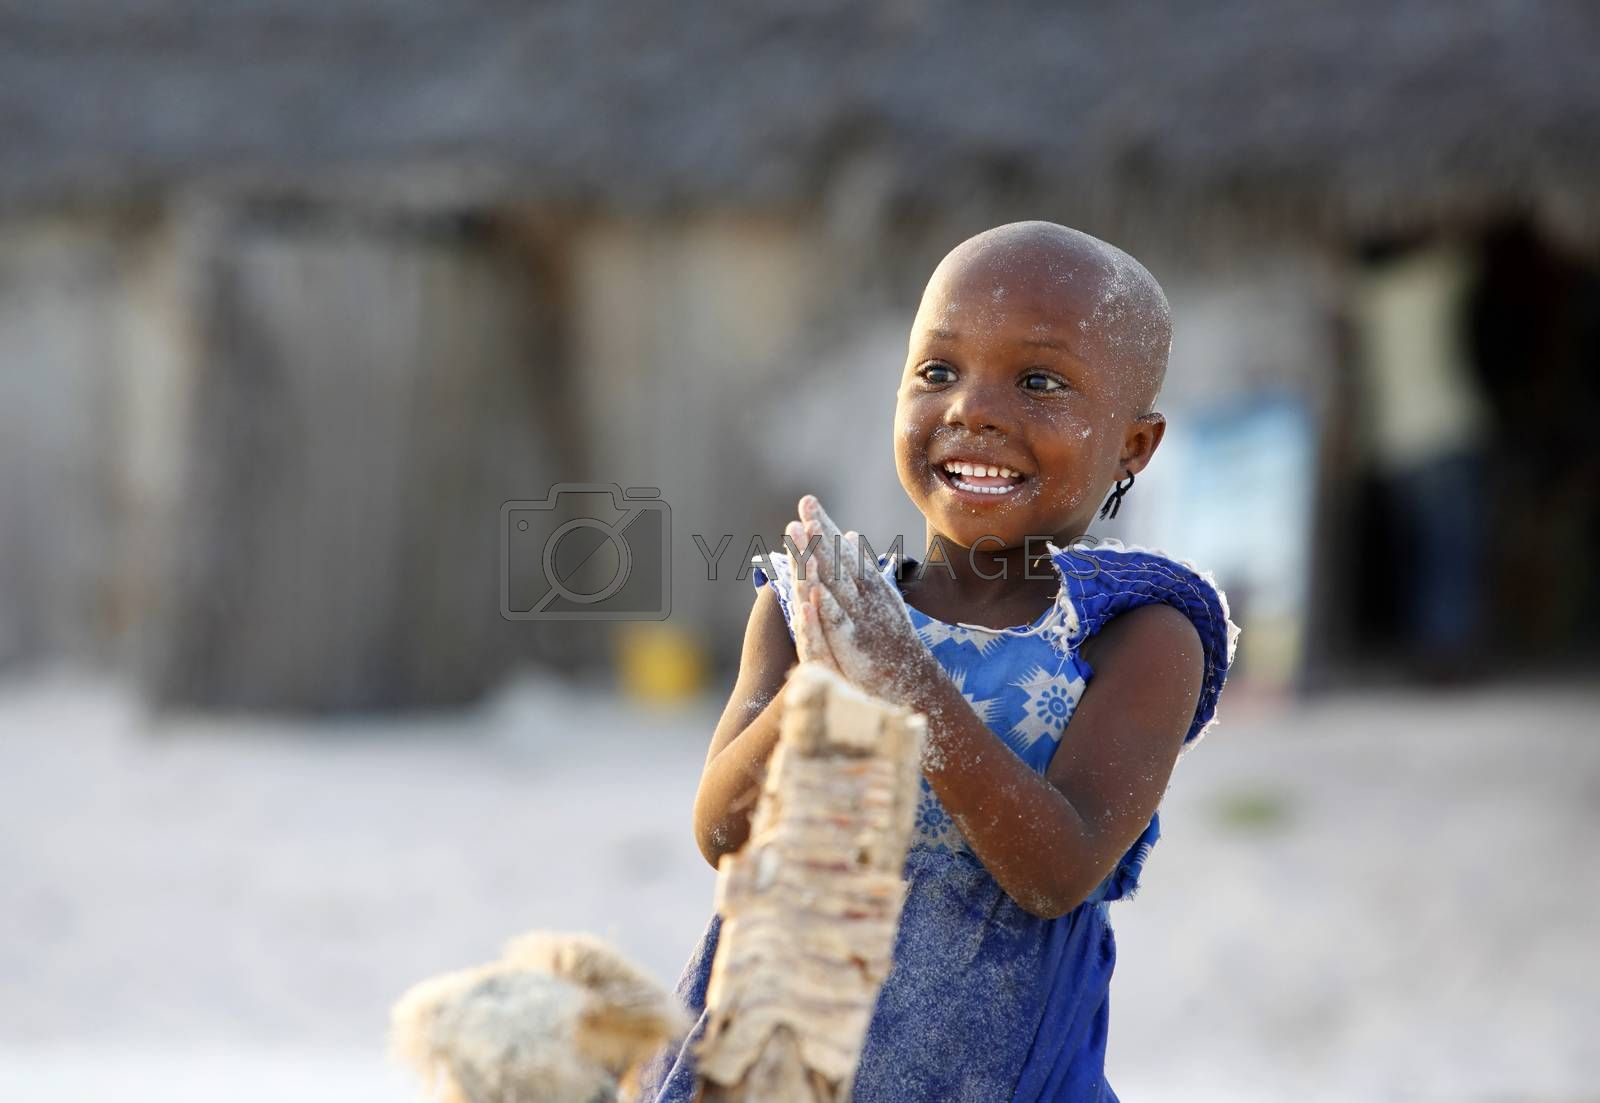 Zanzibar, Tanzania - January 9, 2016: Little cheerful African girl on the beach posing for photos Nungwi. Zanzibar